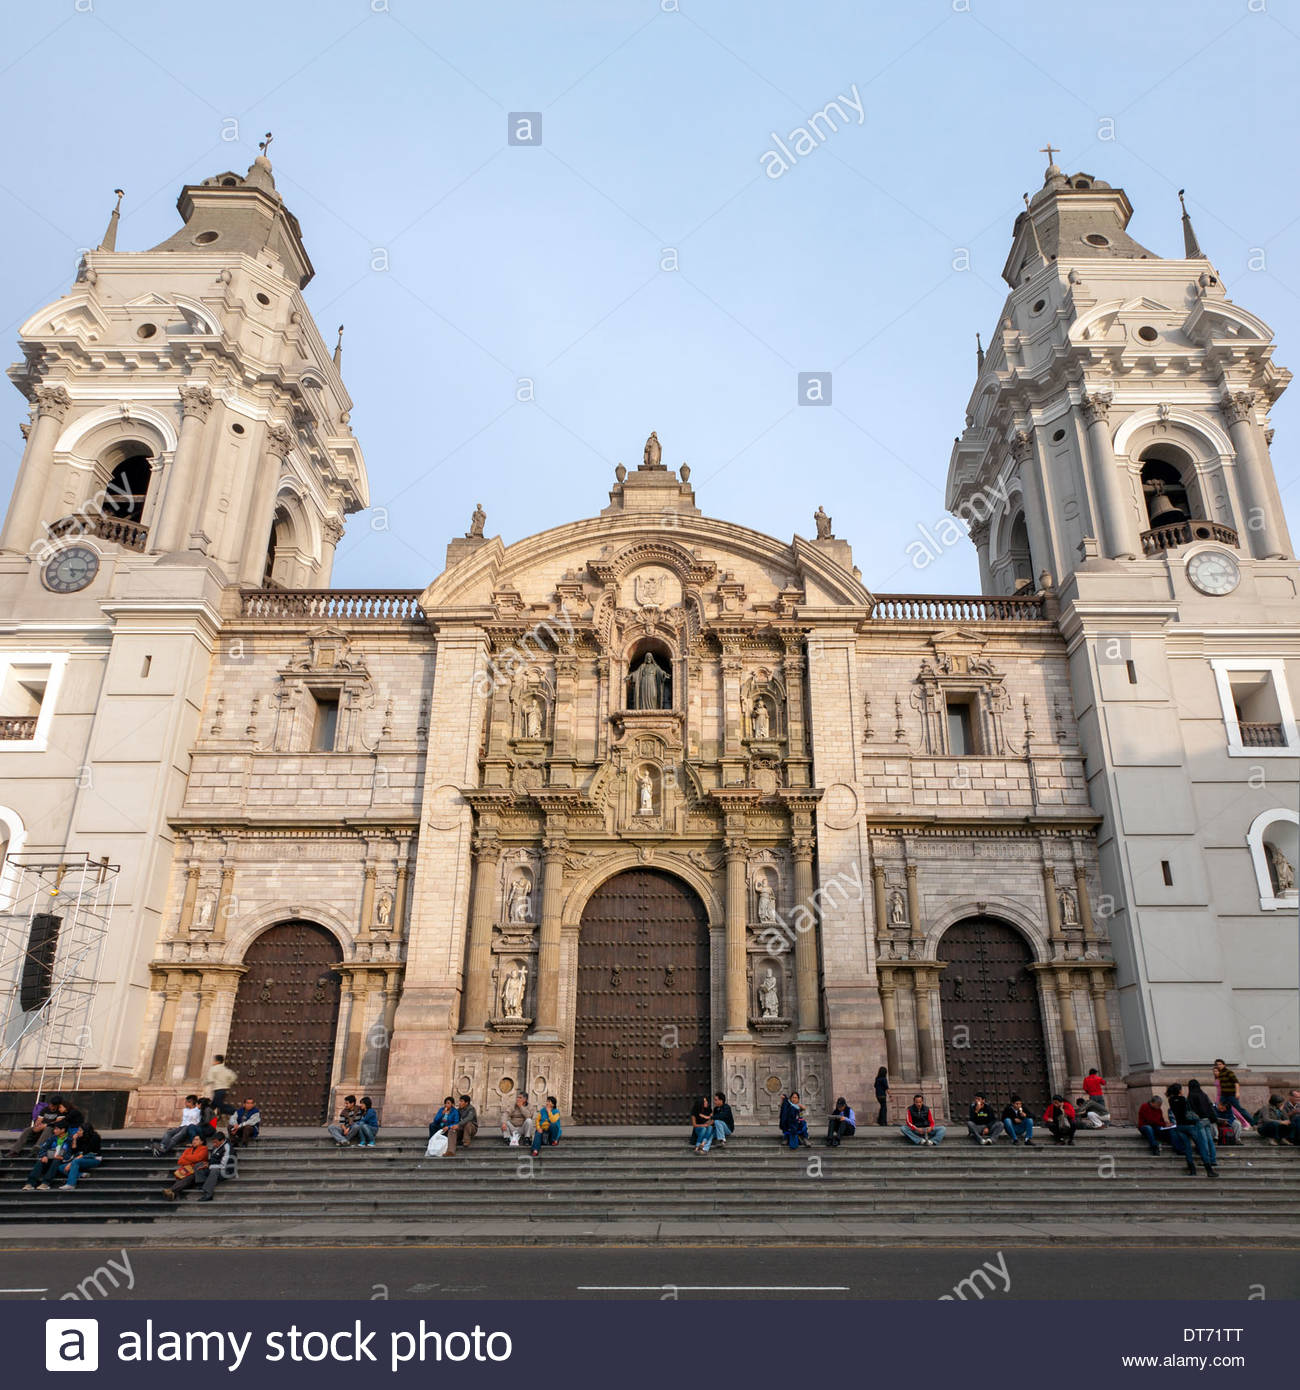 Lima Cathedral on the east side of Plaza Mayor (Plaza de Armas) in central Lima, Peru - Stock Image